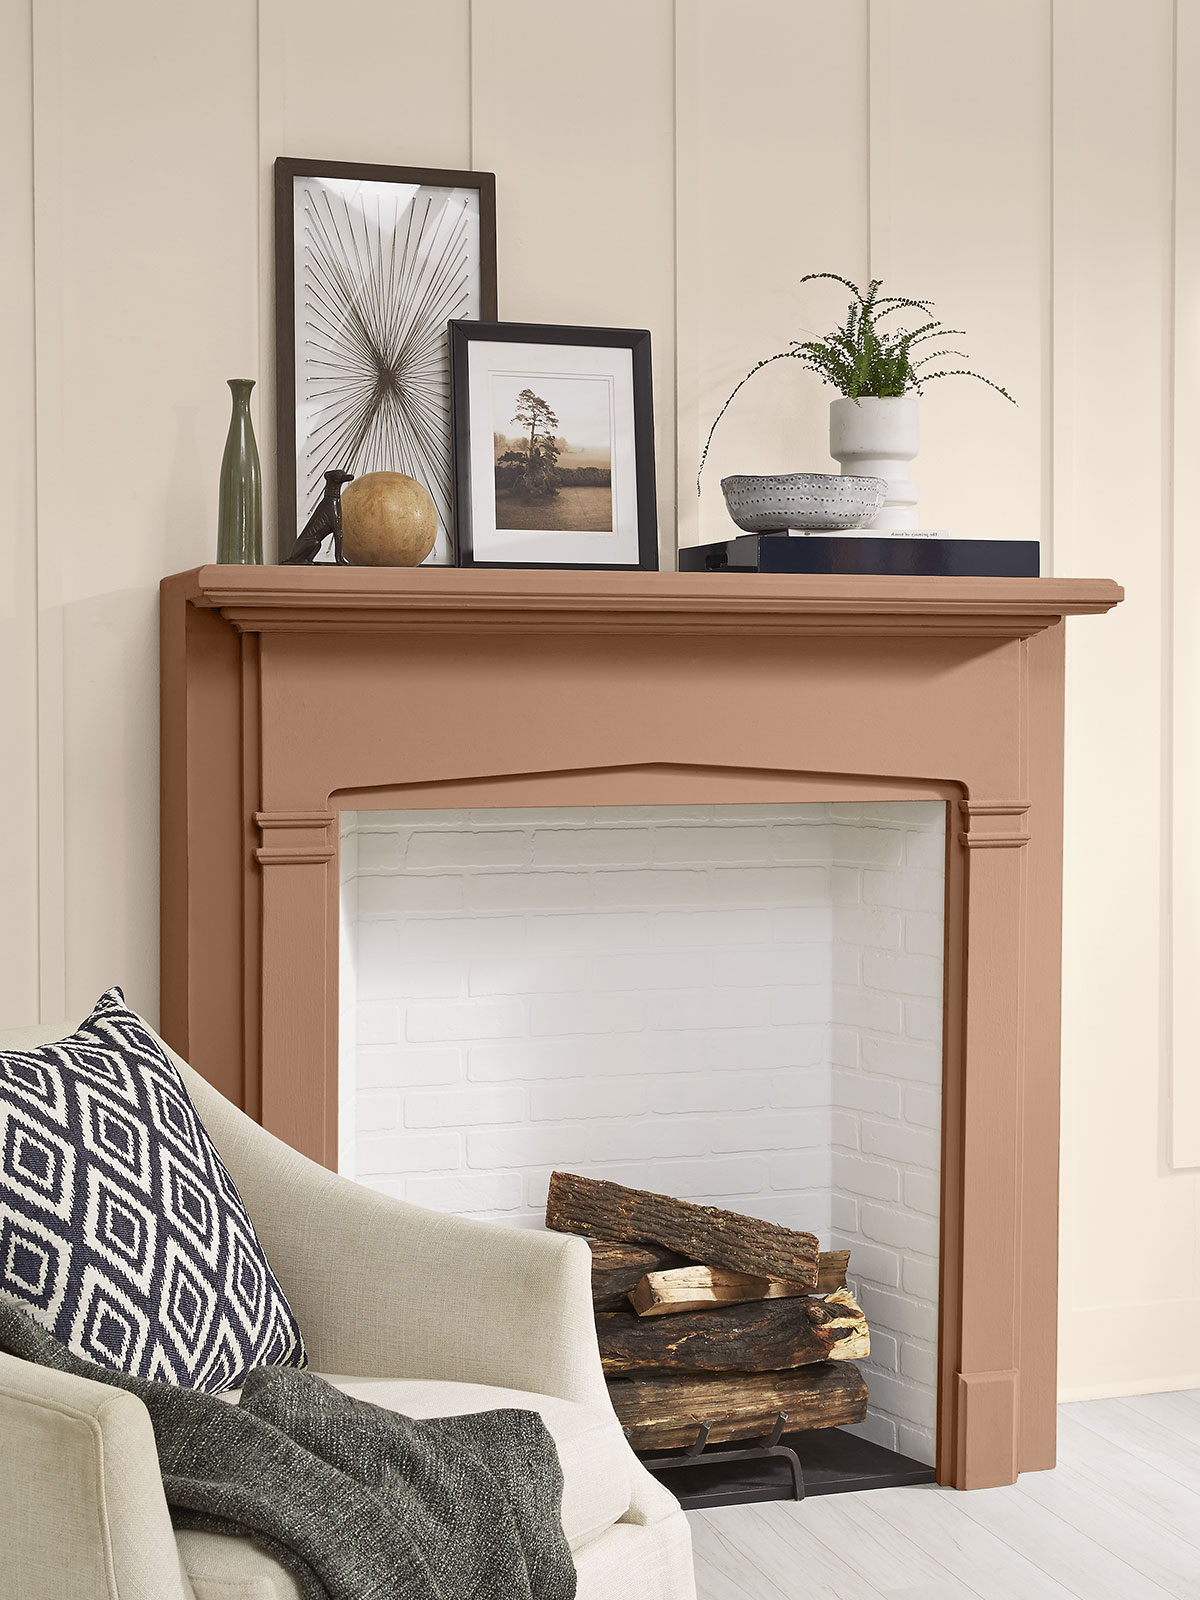 Behr Color of the Year 2021, Fireplace